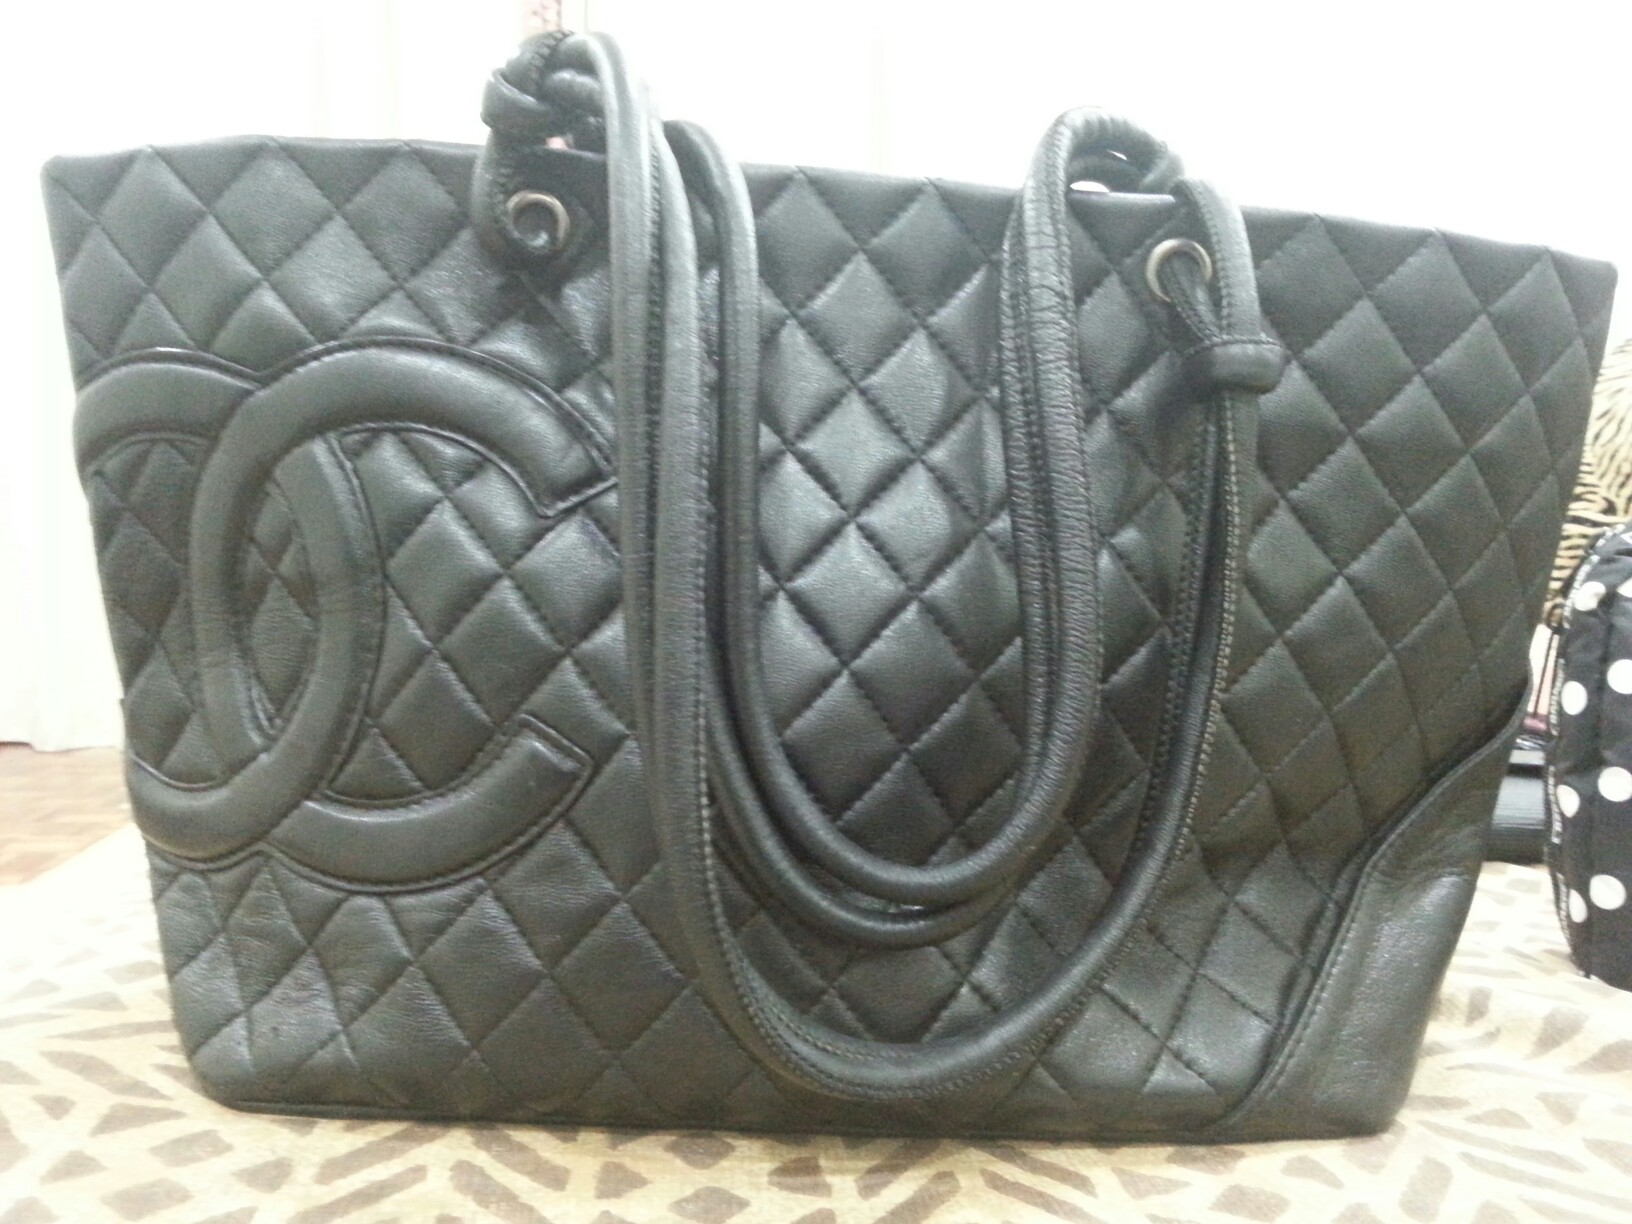 09a19b3d86fd Chanel Cambon Authentic Tote Bag, Luxury, Bags & Wallets, Handbags ...